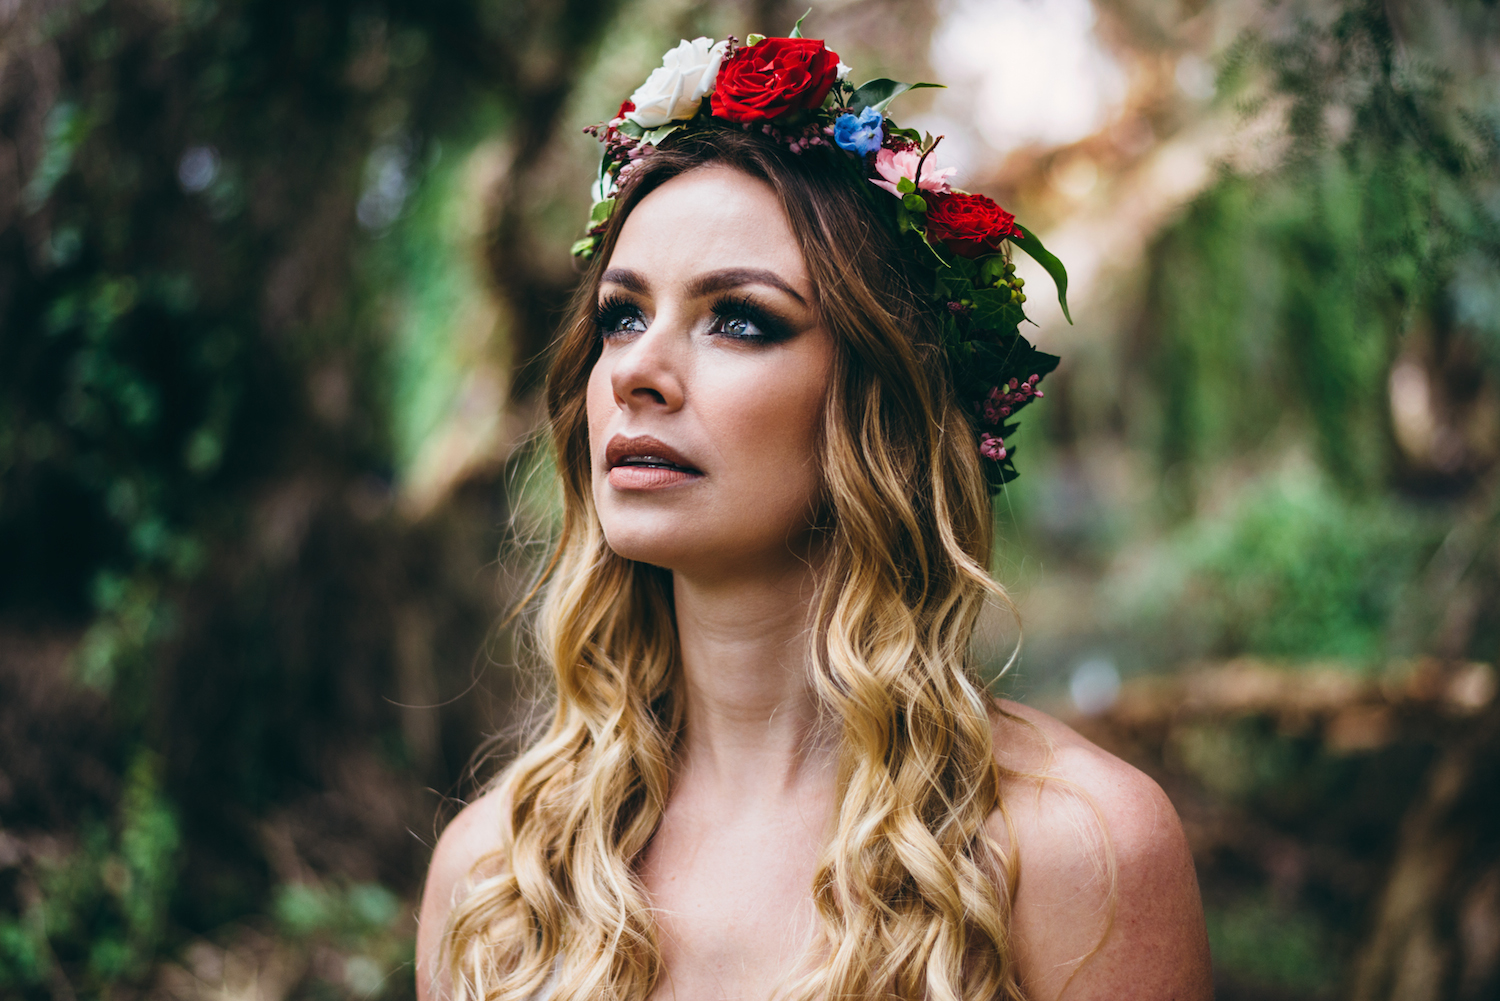 The Secret Garden - Perth blogger model - Katie Rebekah